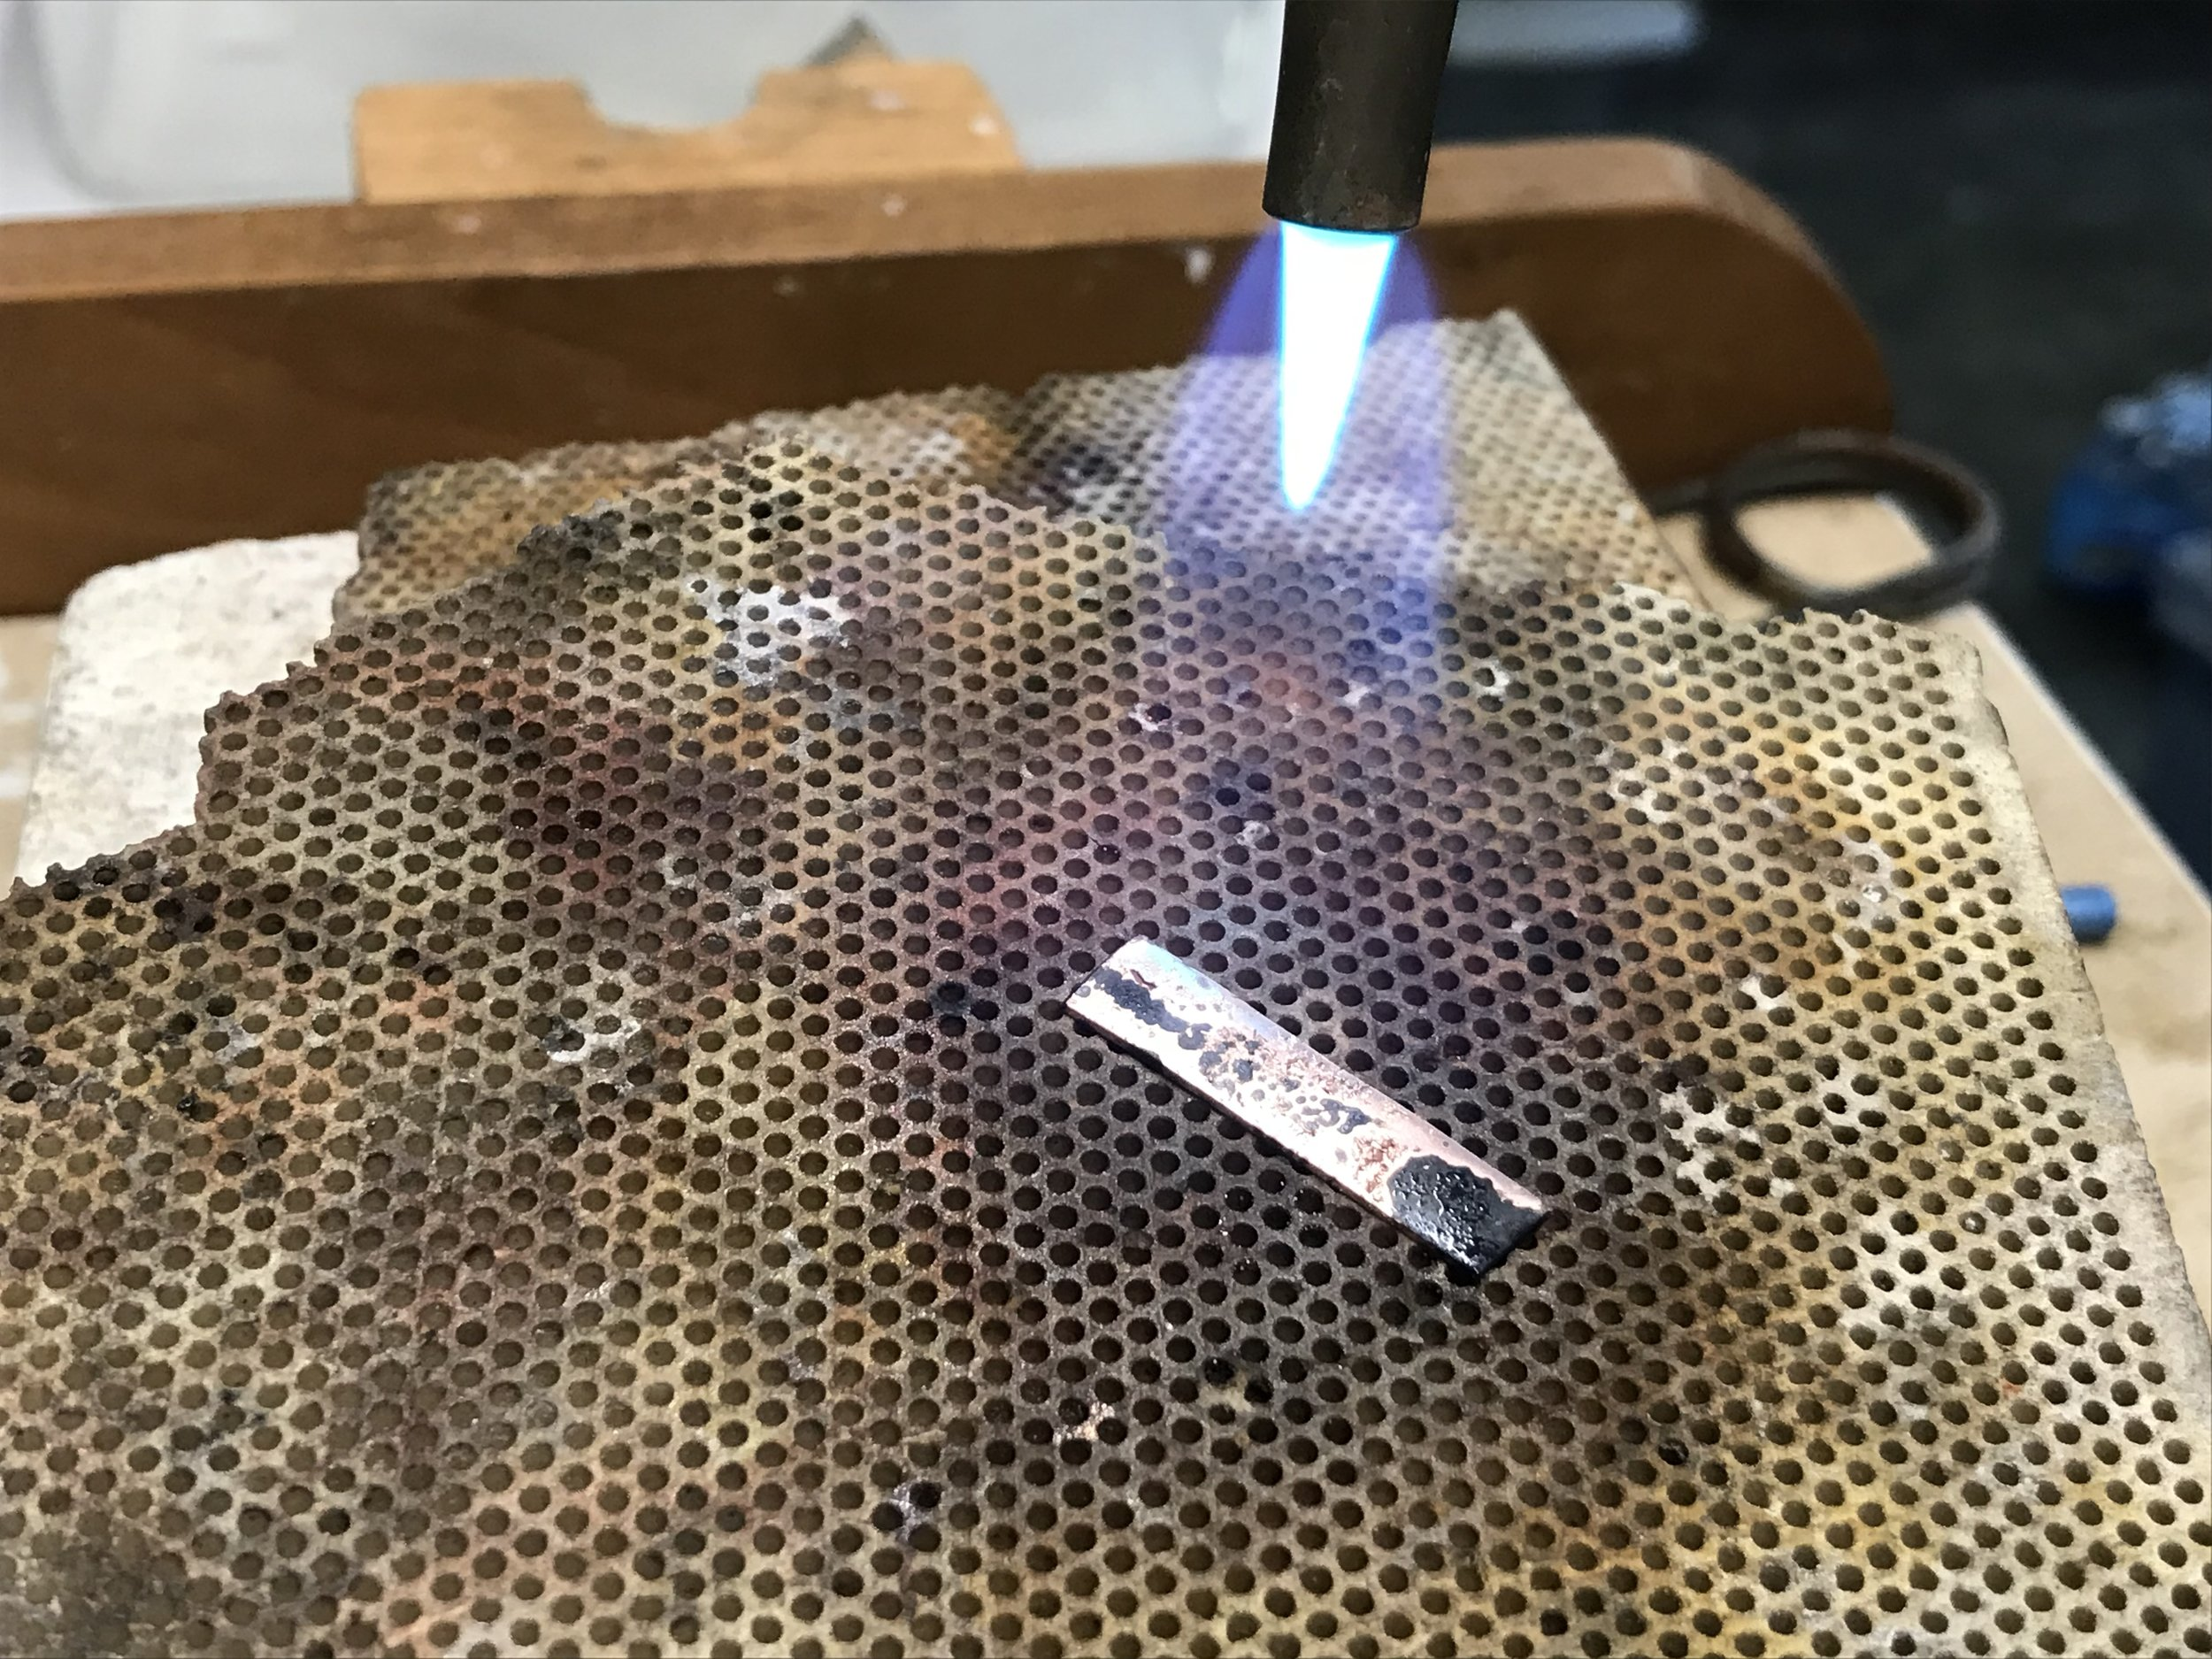 Step 2. - Anneal the brass strips and copper washers by heating them with a torch. Annealing makes the metal soft and pliable.